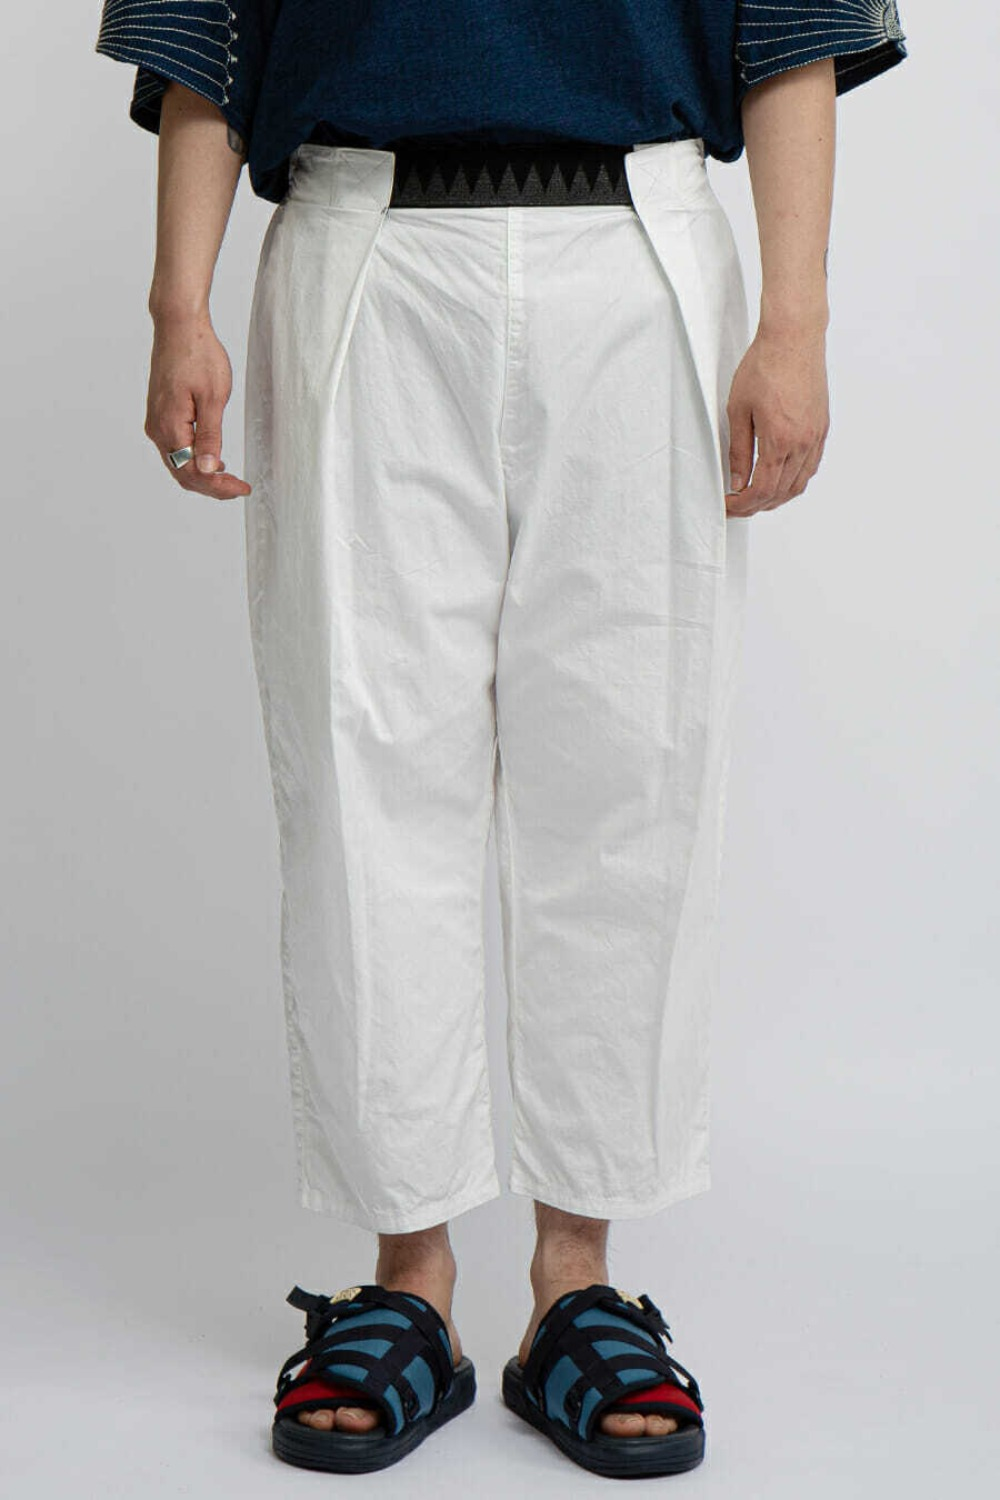 COMBED BURBERRY COTTON EASY-BEACH-GO PANTS WHITE